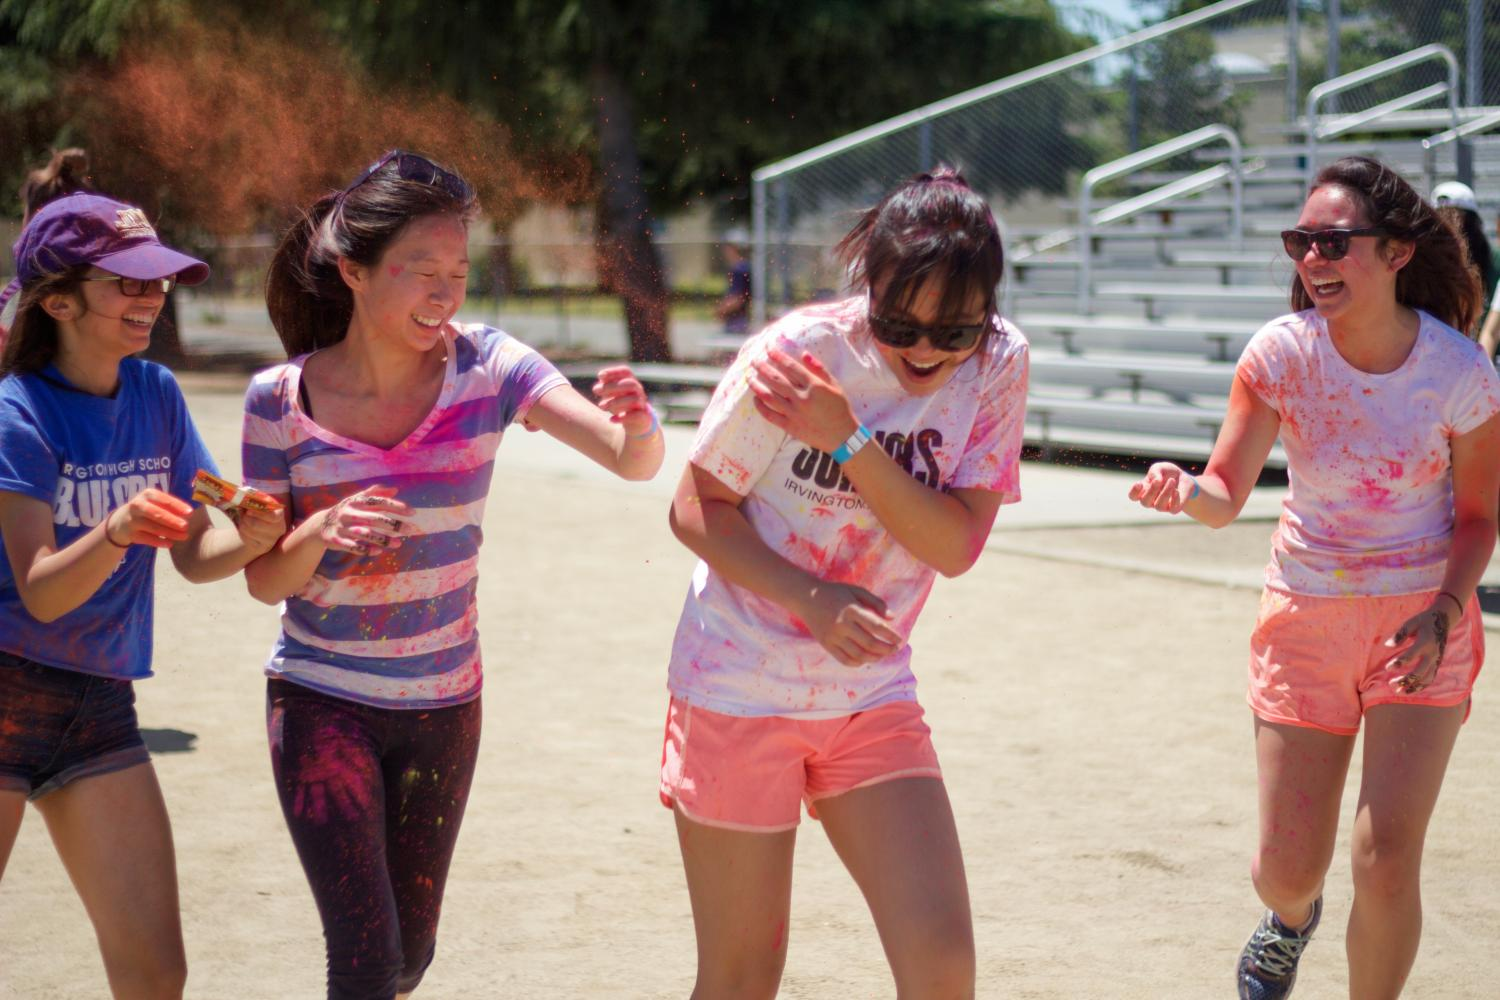 Sophomores Saisha Singh, Mary Tang, Hannah Limary, and Simone Mendoza throw color at one another while running around the track.